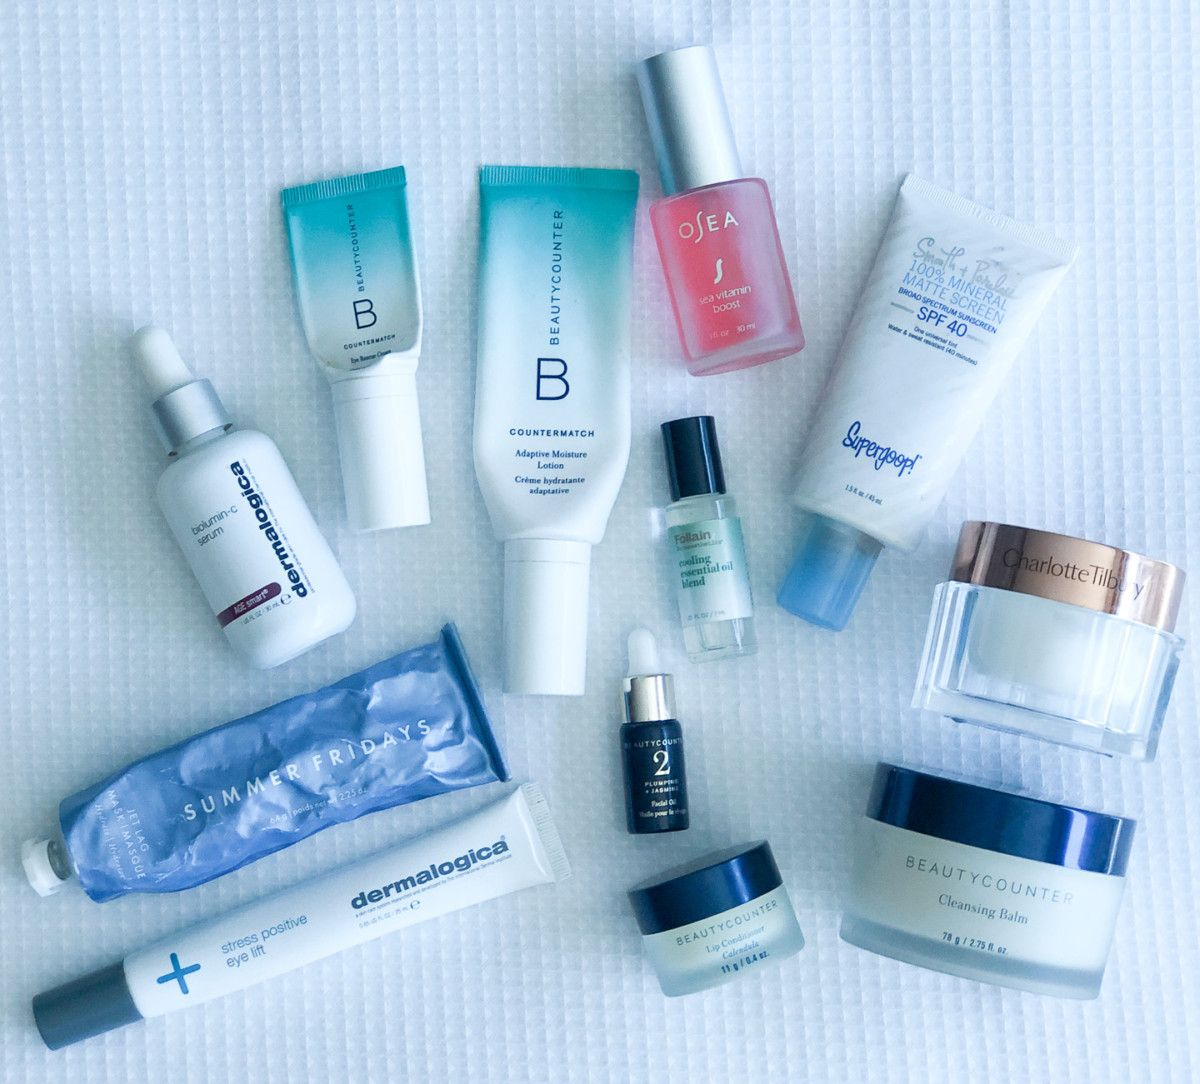 Cobalt Chronicles, Houston wellness blogger, is sharing all the details on her travel skincare and what she brought with her on a recent trip!